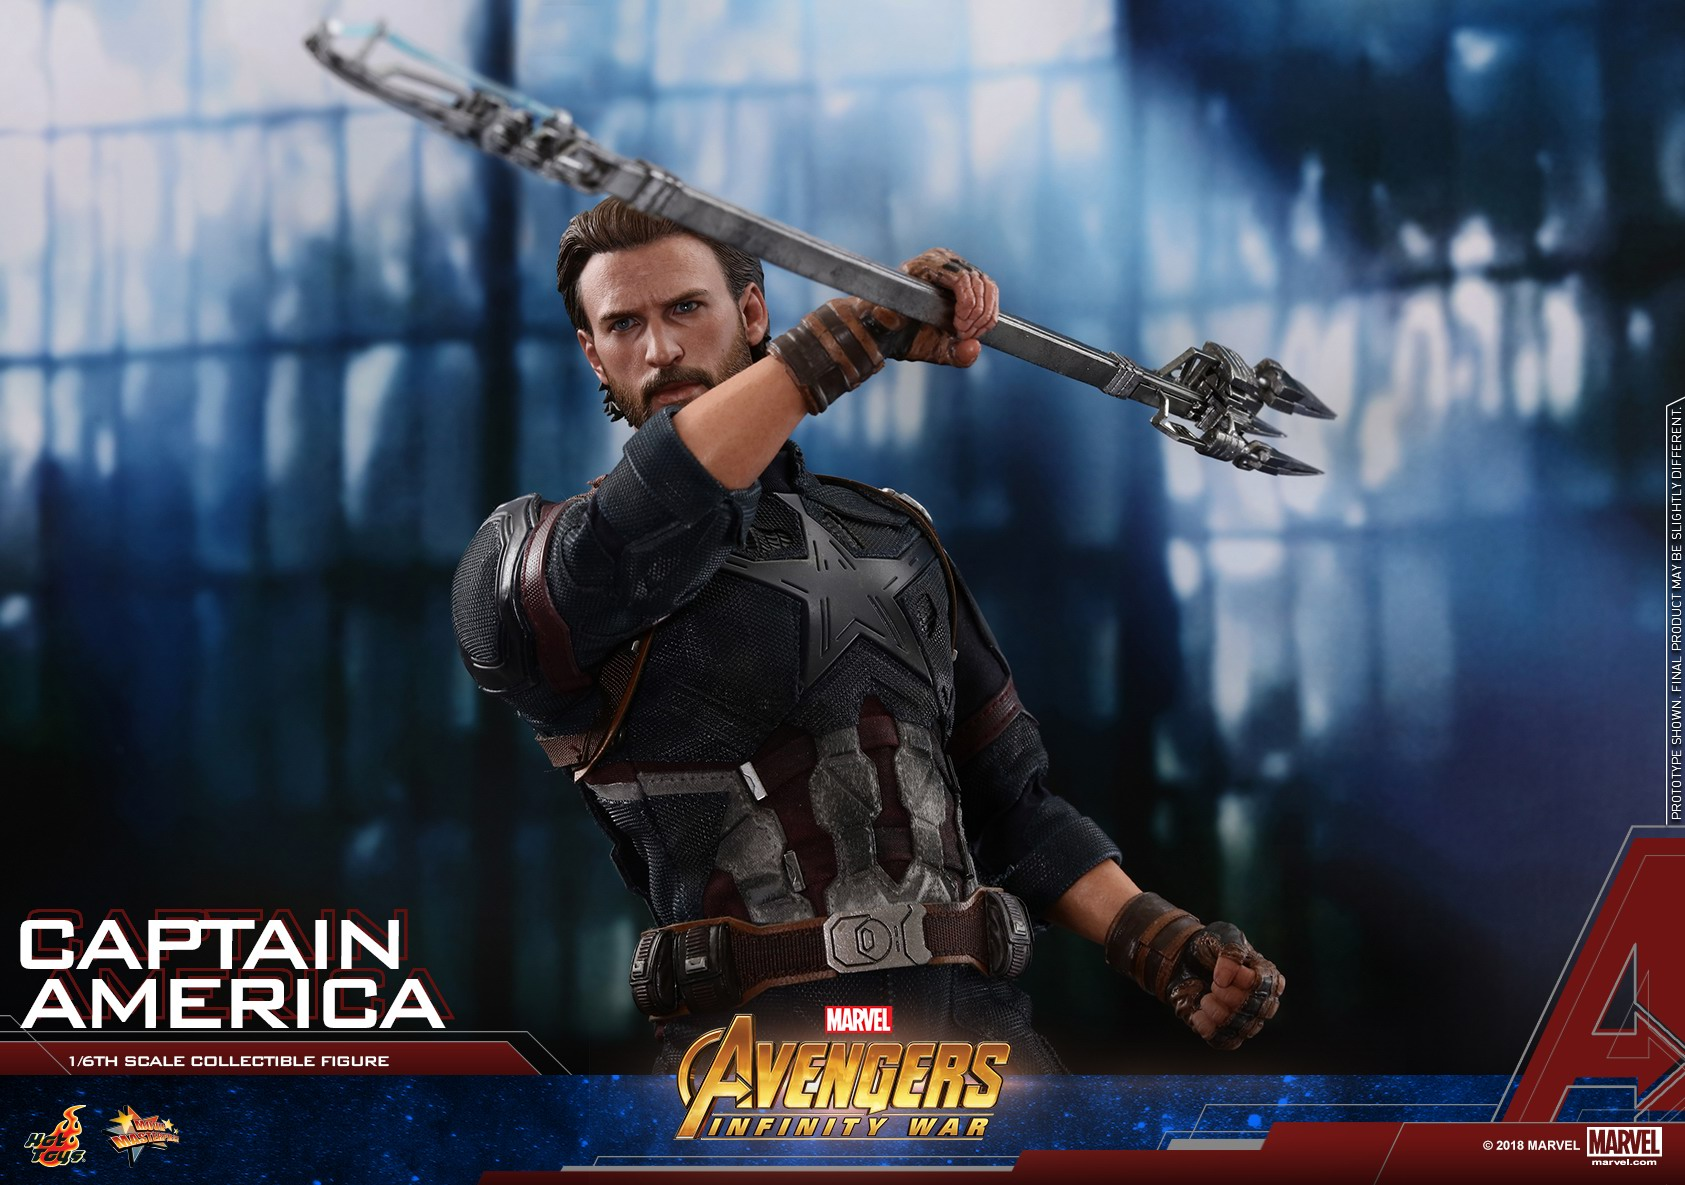 Hot-Toys-AIW-Captain-America-collectible-figure_Mystery-Weaspon_PR01.jpg